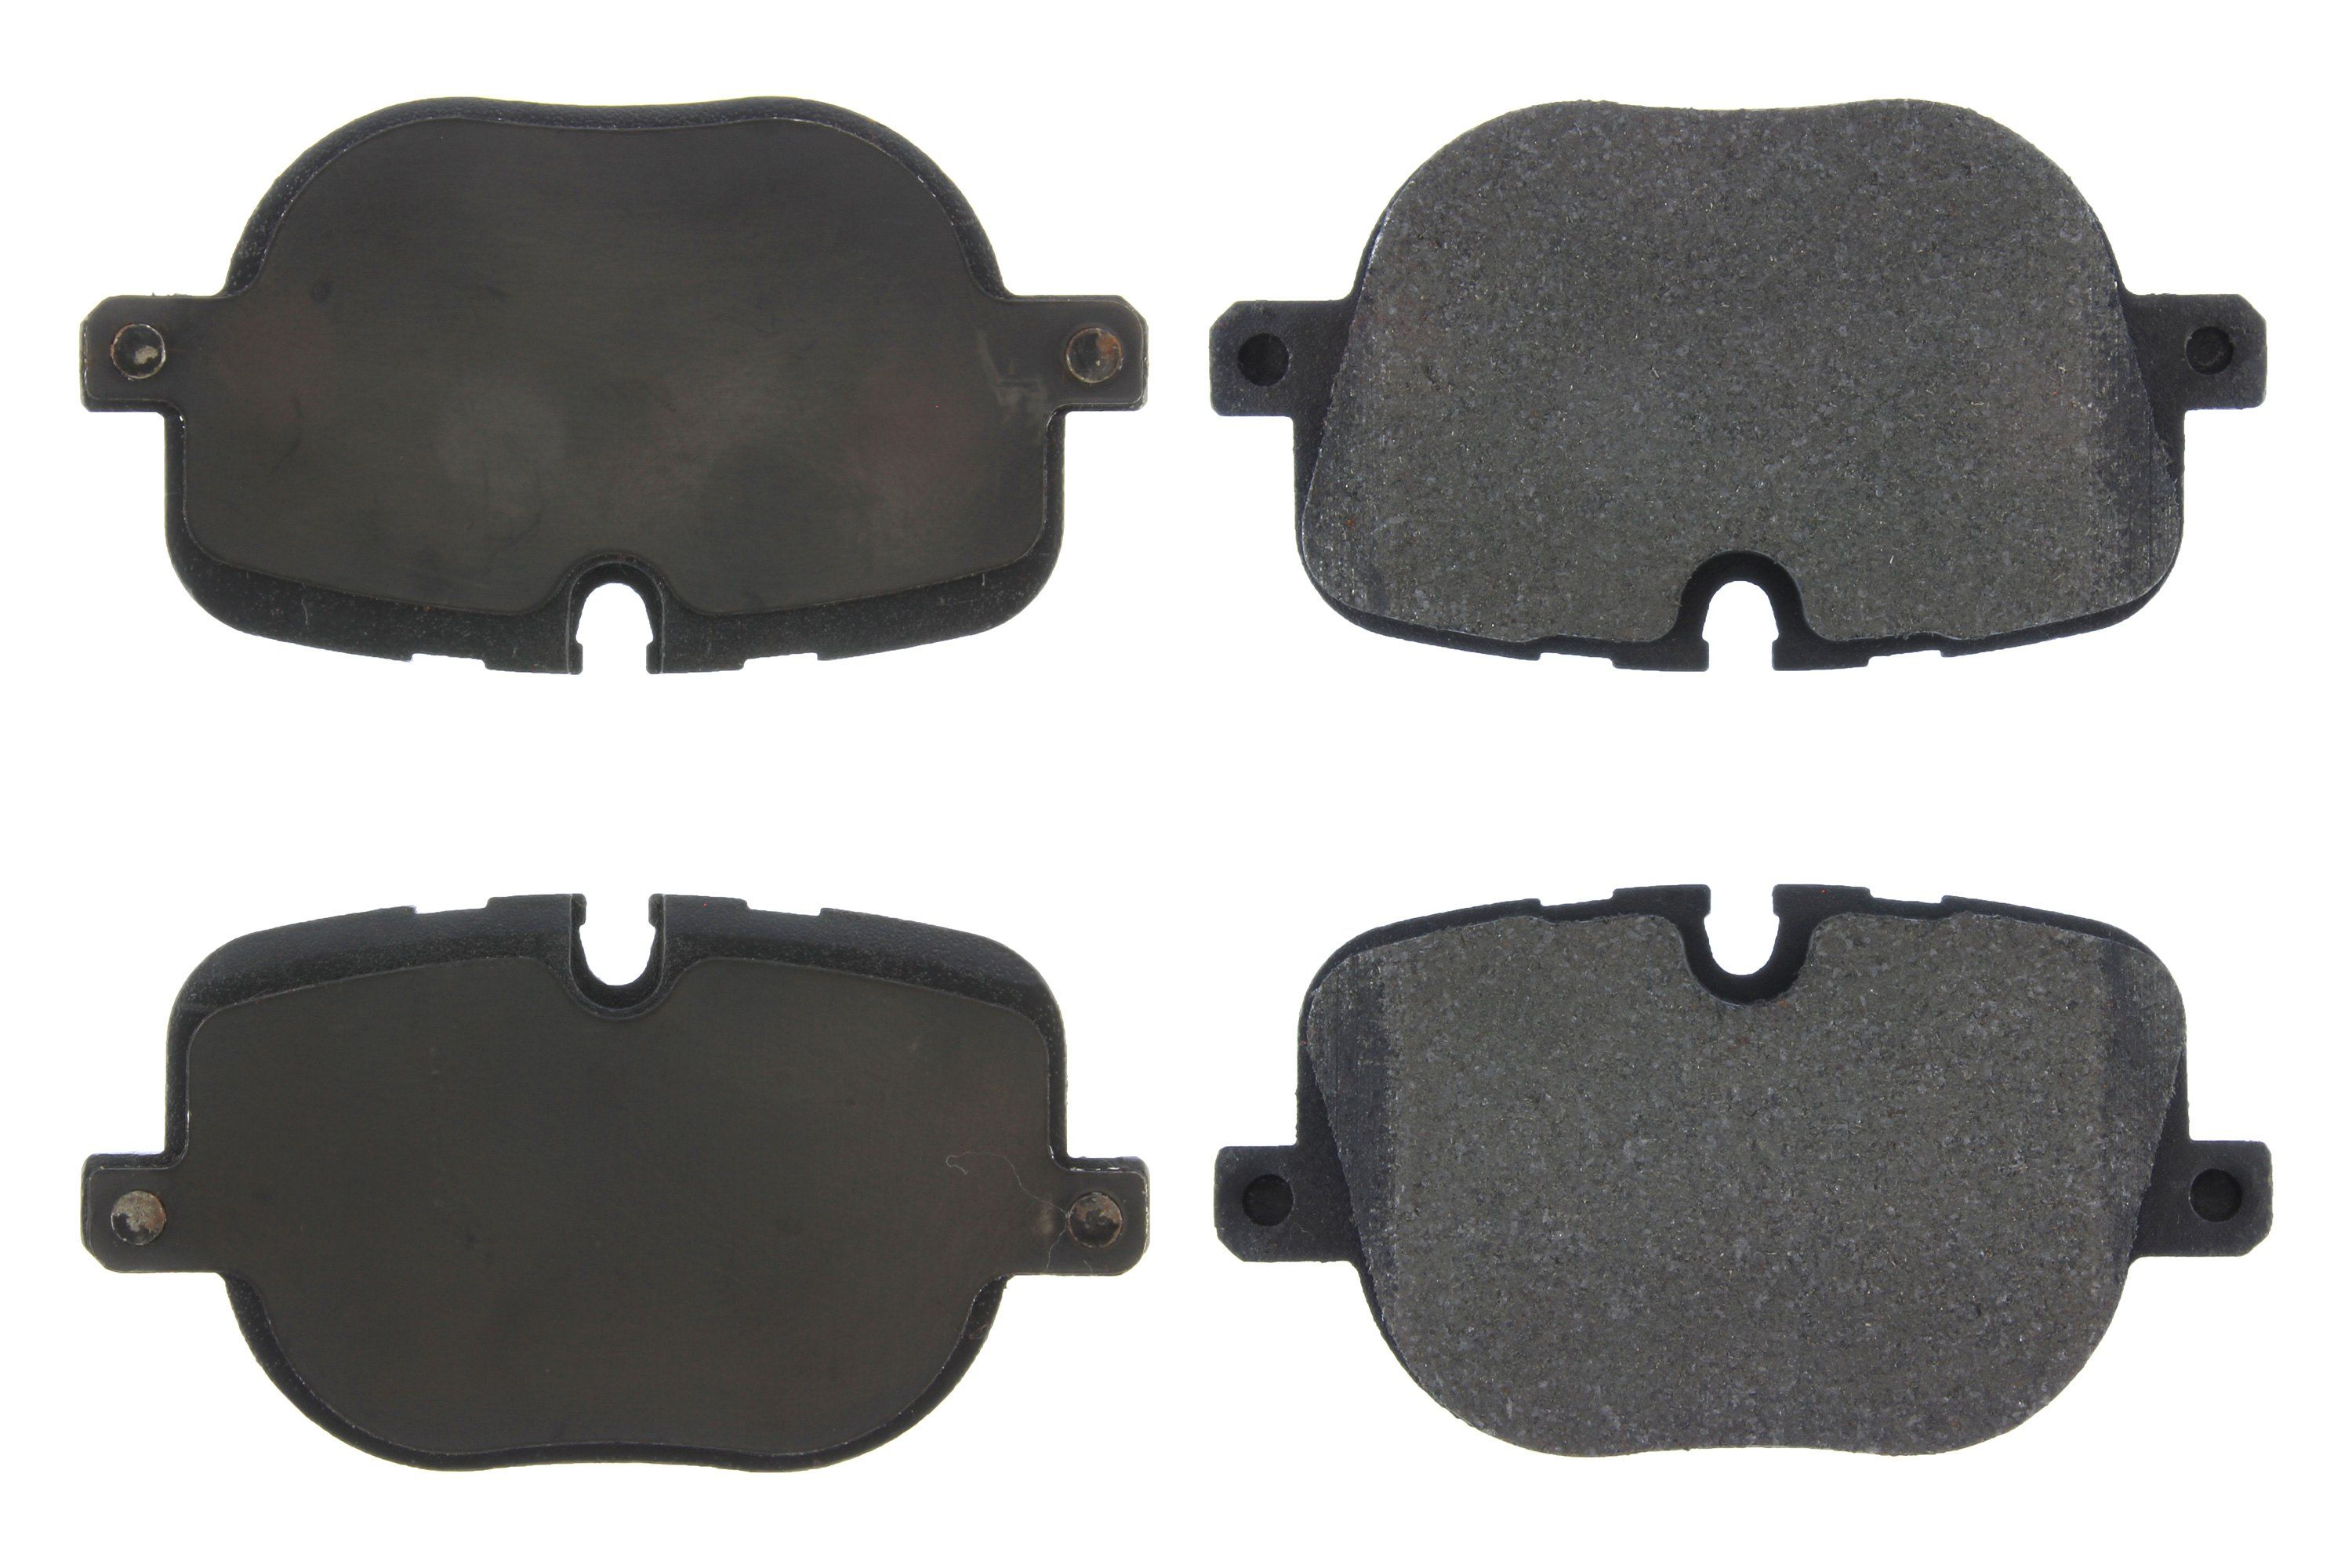 Stoptech Street Select Brake Pads Land Rover Range Rover 10 13 Rear W Hardware 305 14270 In 2021 Range Rover Range Rover Supercharged Land Rover